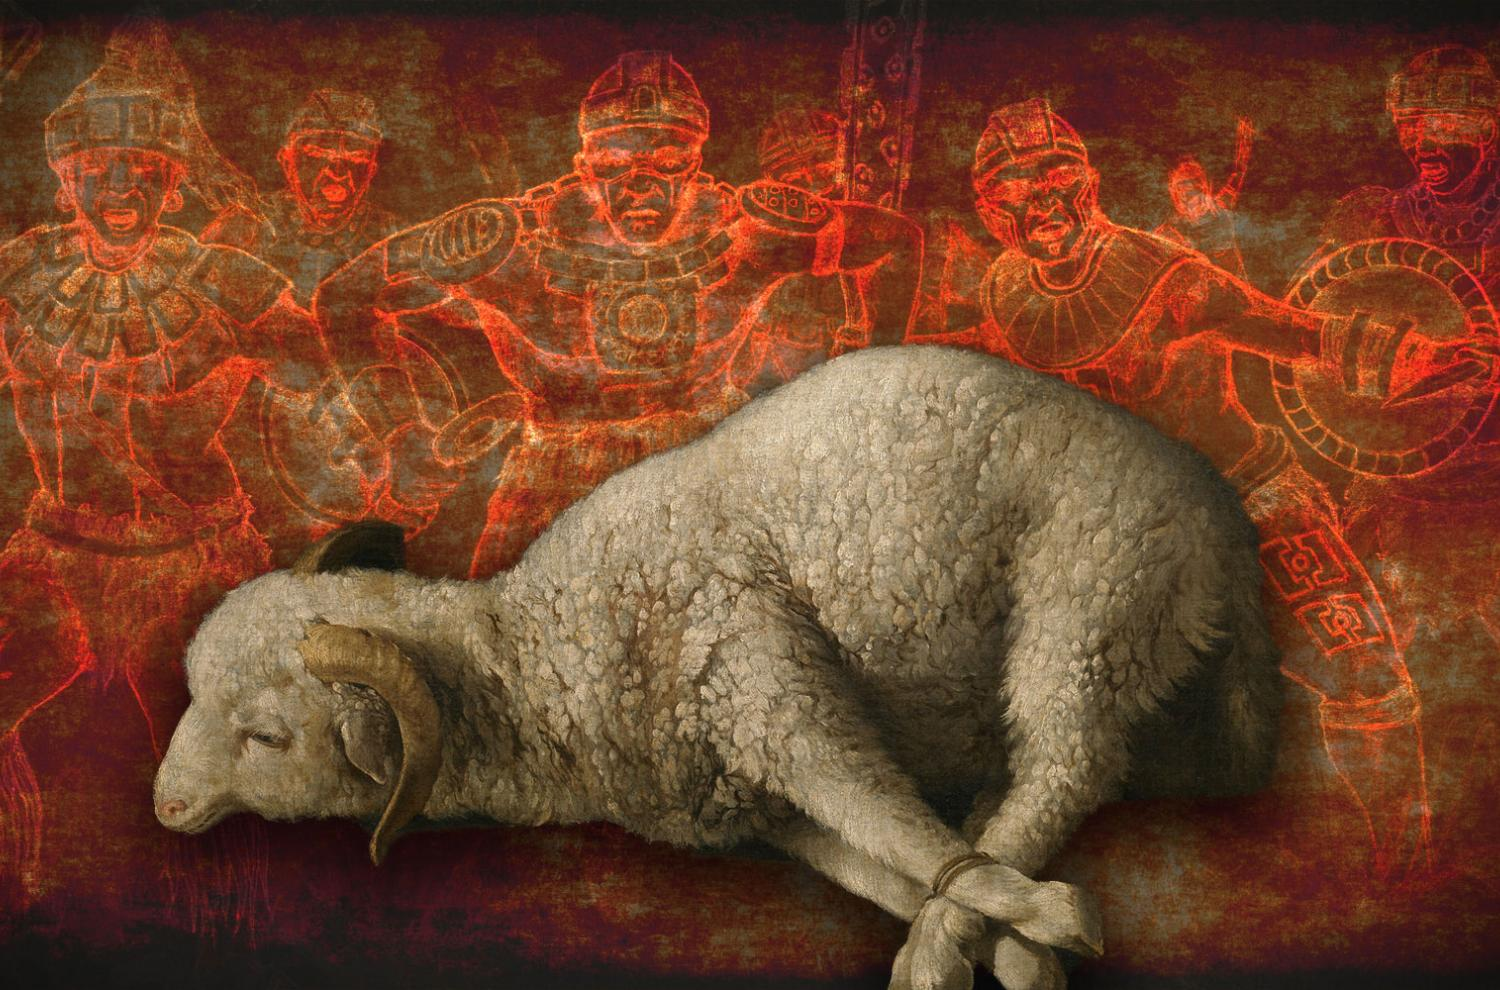 The Gadianton robbers and their lamb-skin. Image by Book of Mormon Central.